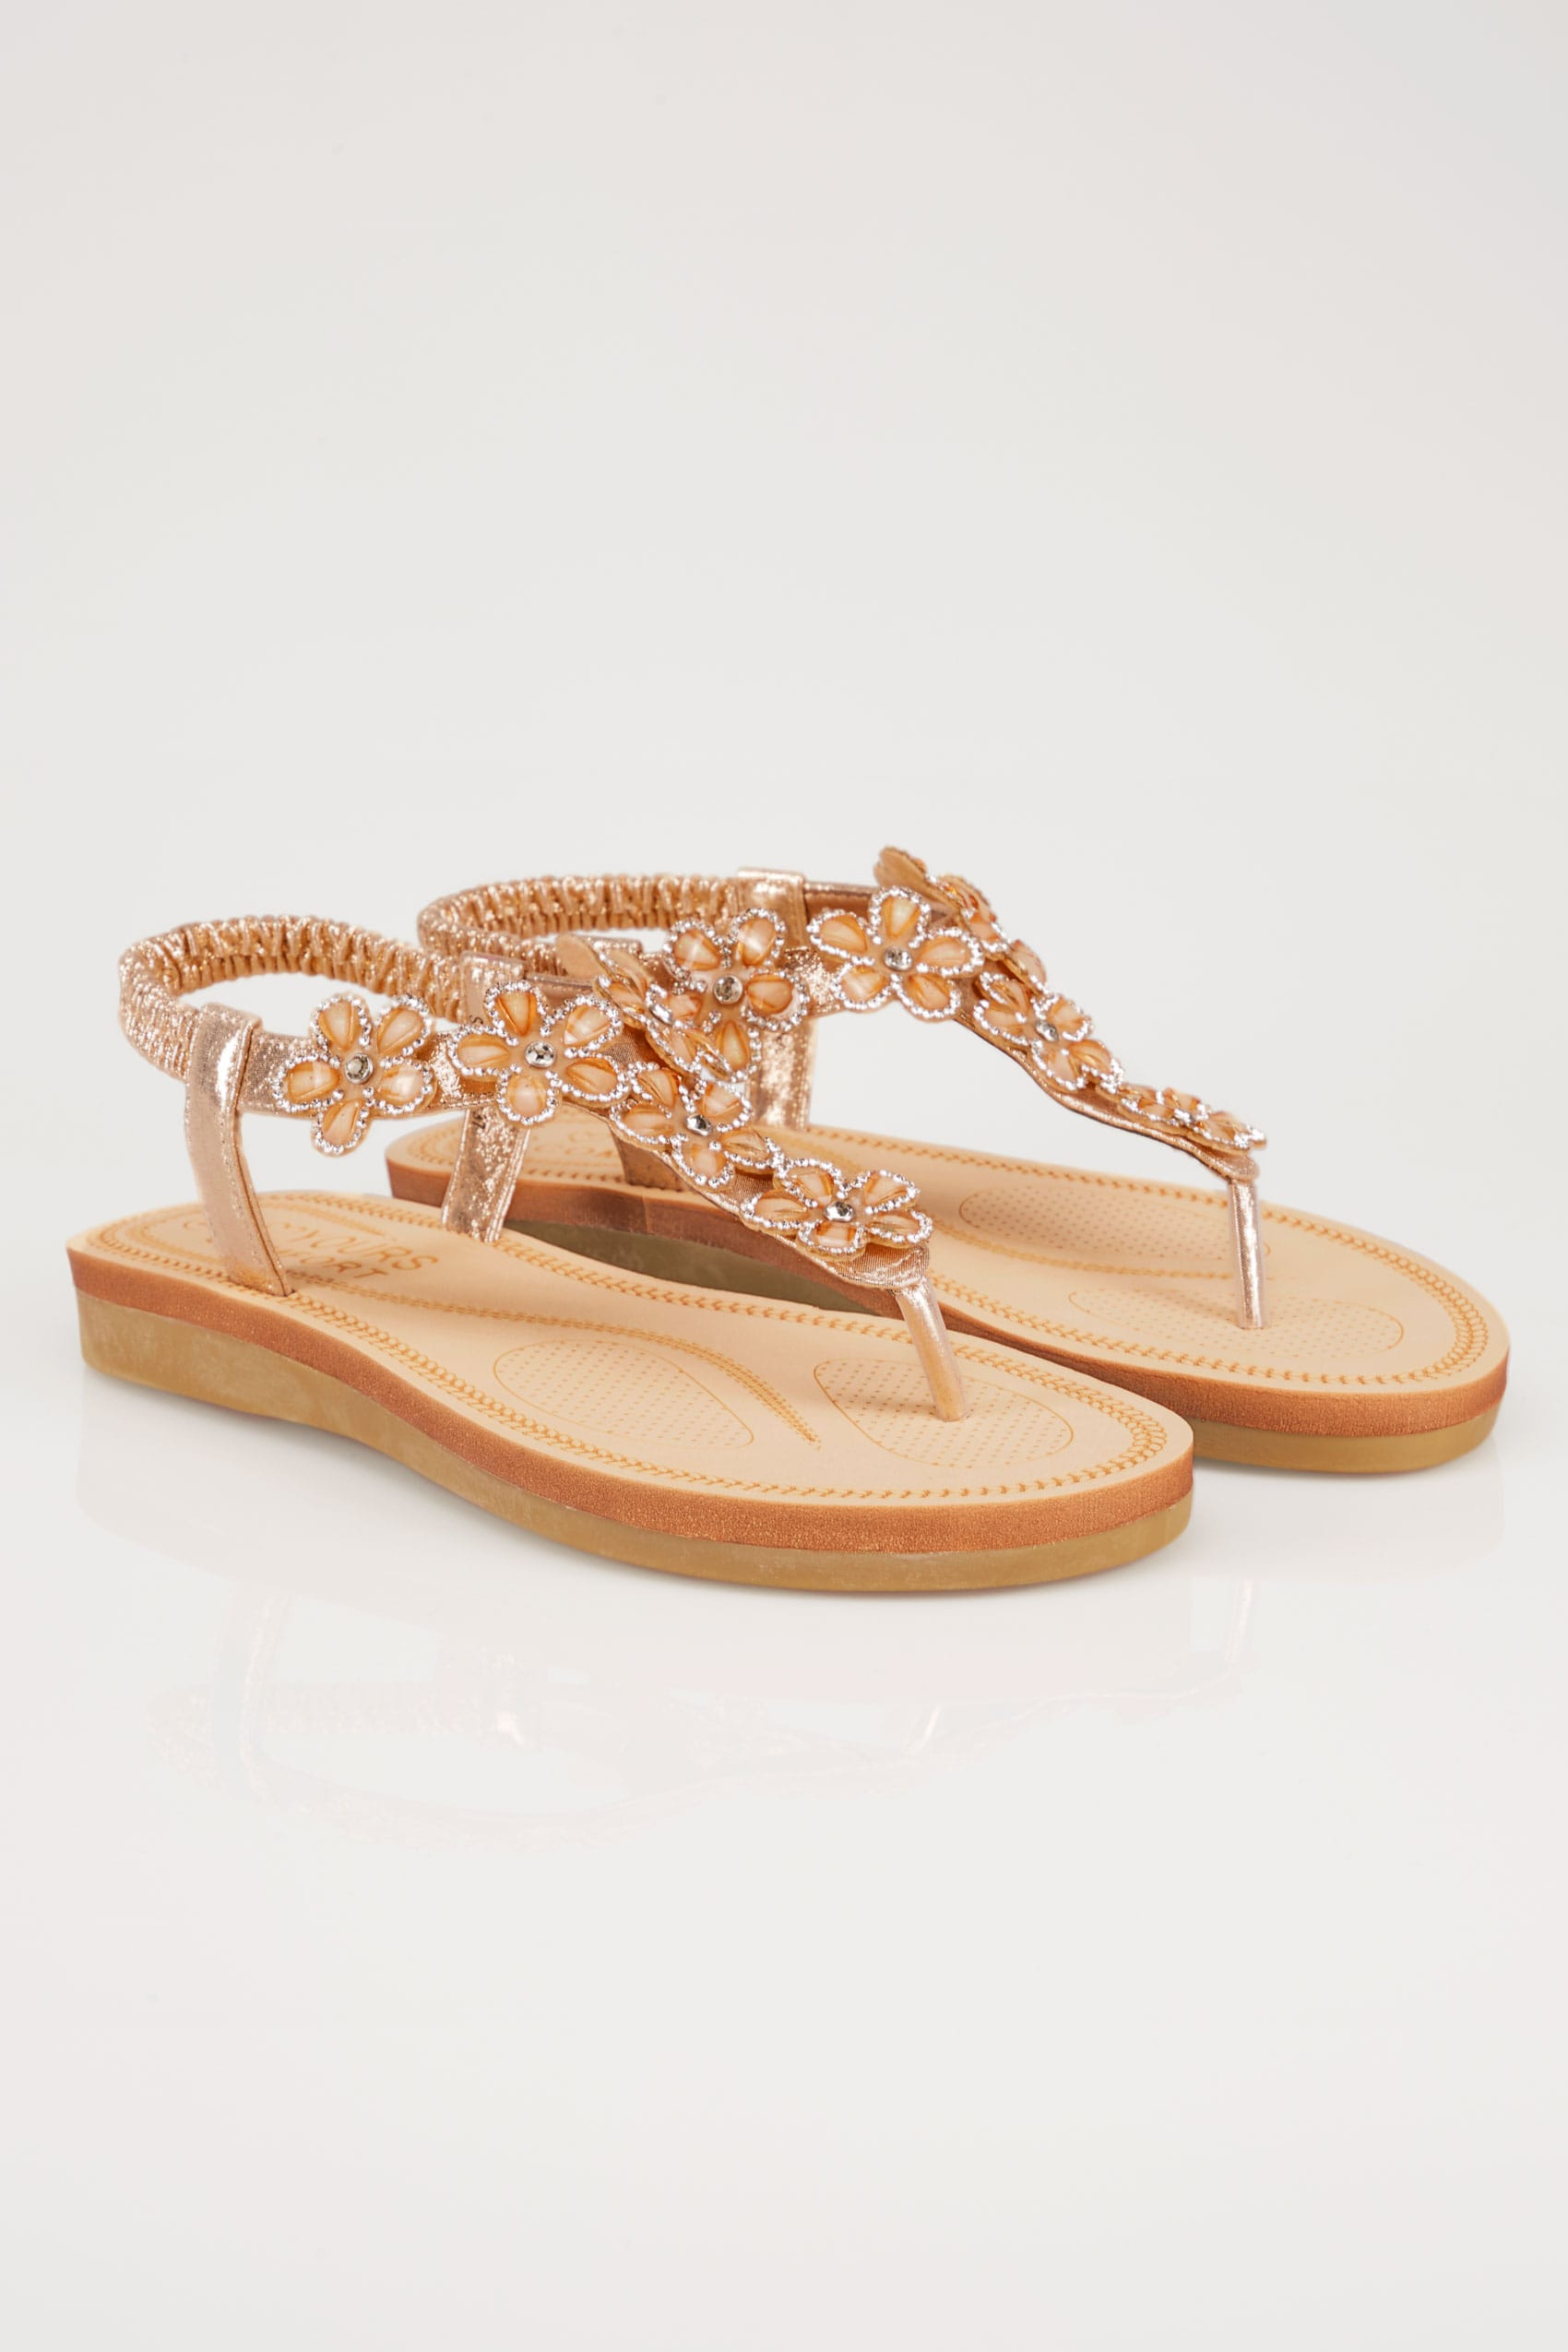 f1de774bca9e Bronze Embellished Floral Sandals In EEE Fit